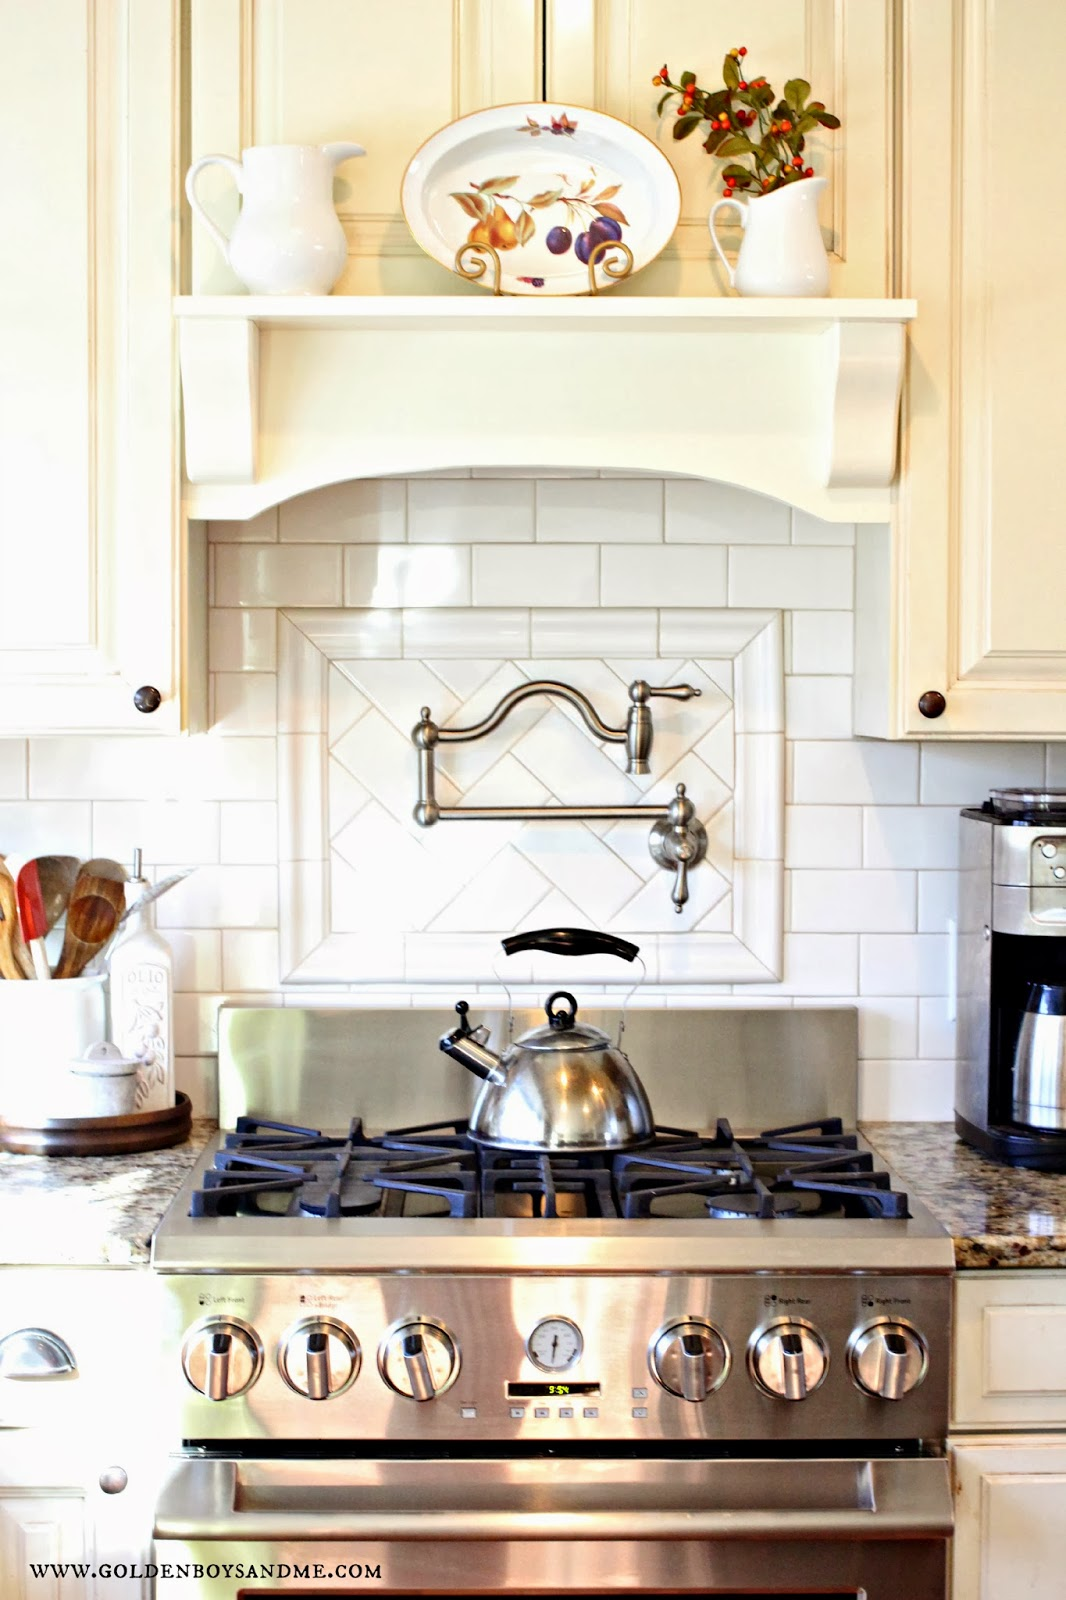 Our {Latest} Kitchen Makeover Reveal | Golden Boys and Me - Corner Range Hood Mantle Images